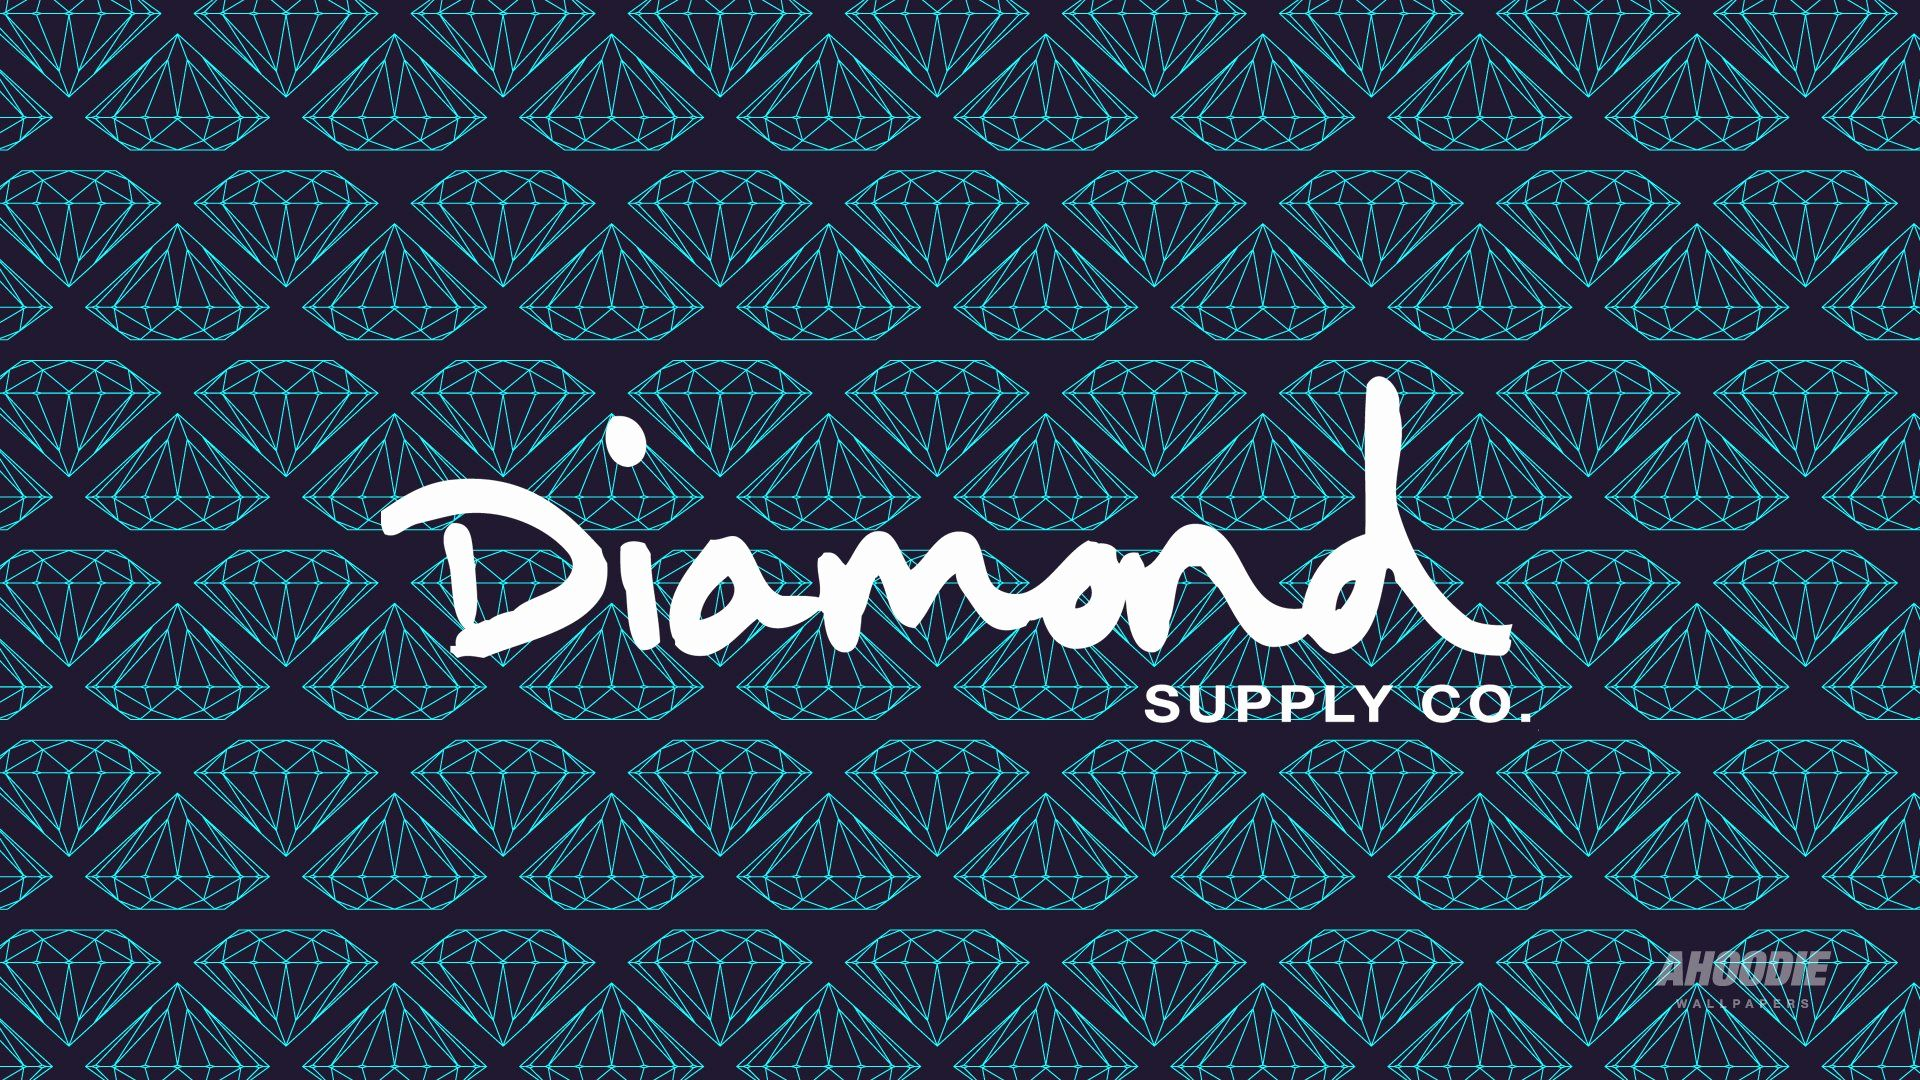 Diamond Supply Co Wallpapers Top Free Diamond Supply Co